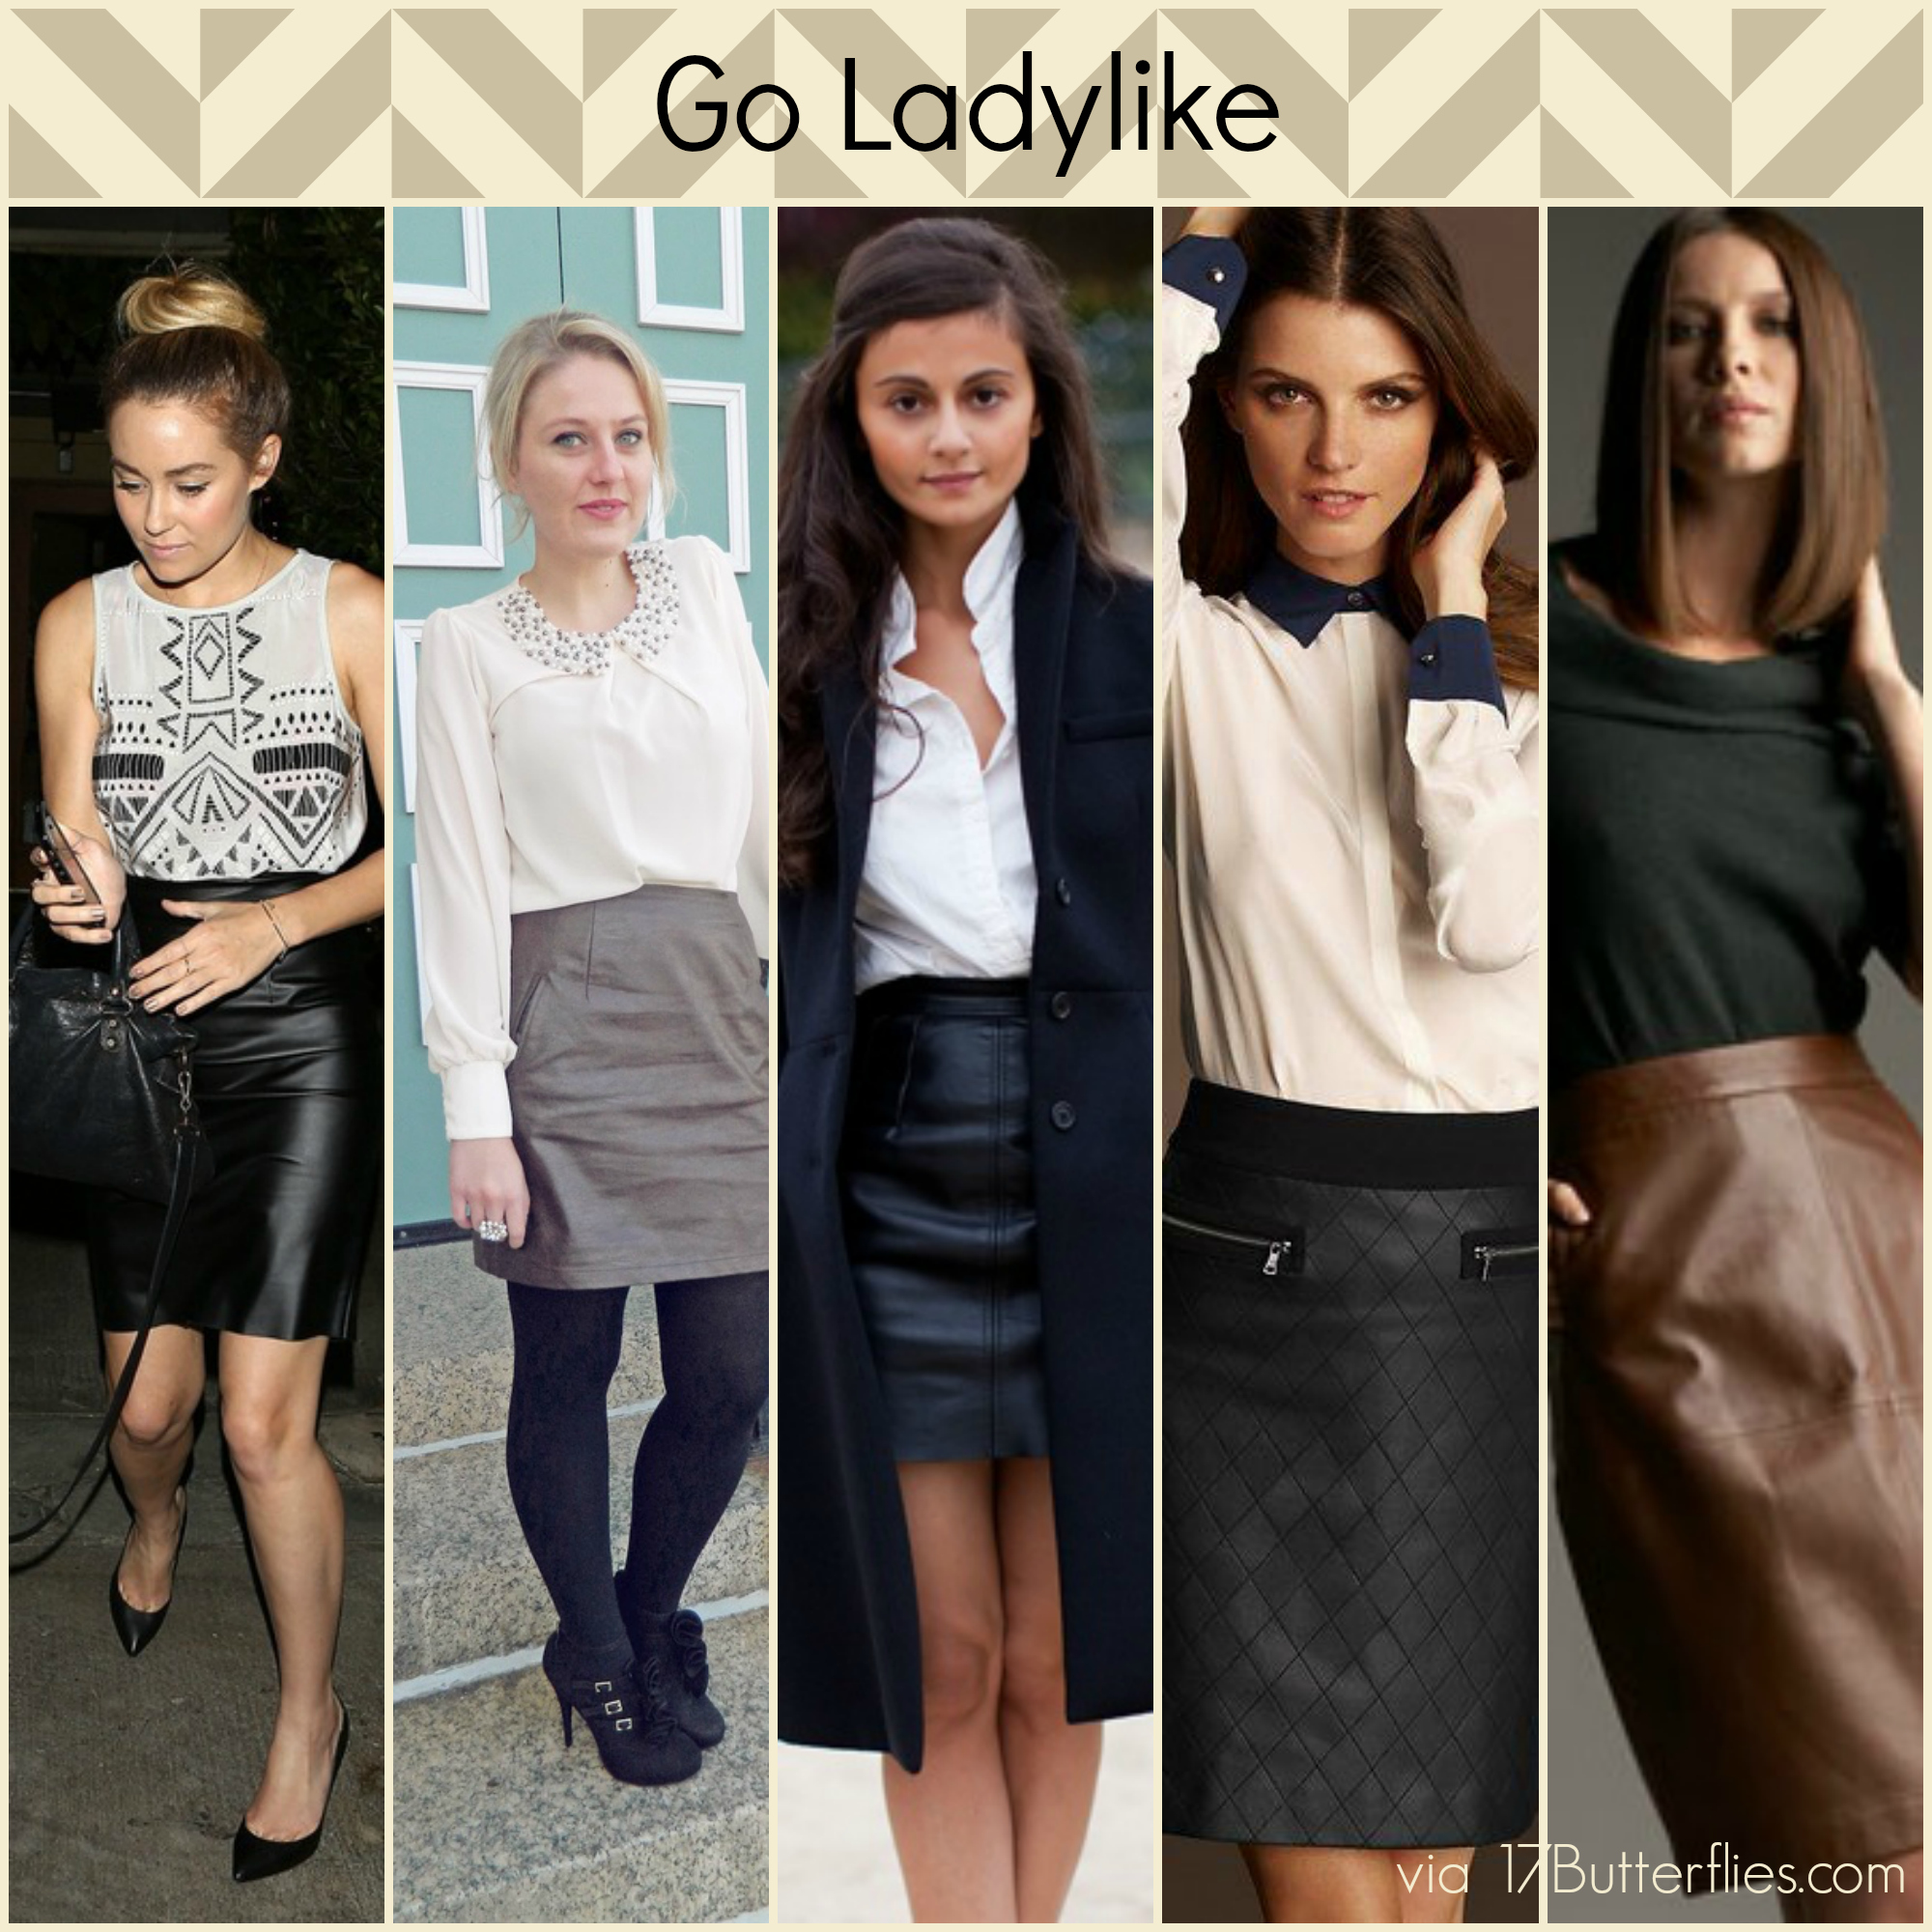 So, you DIY'd a leather skirt. Now what? – 17Butterflies